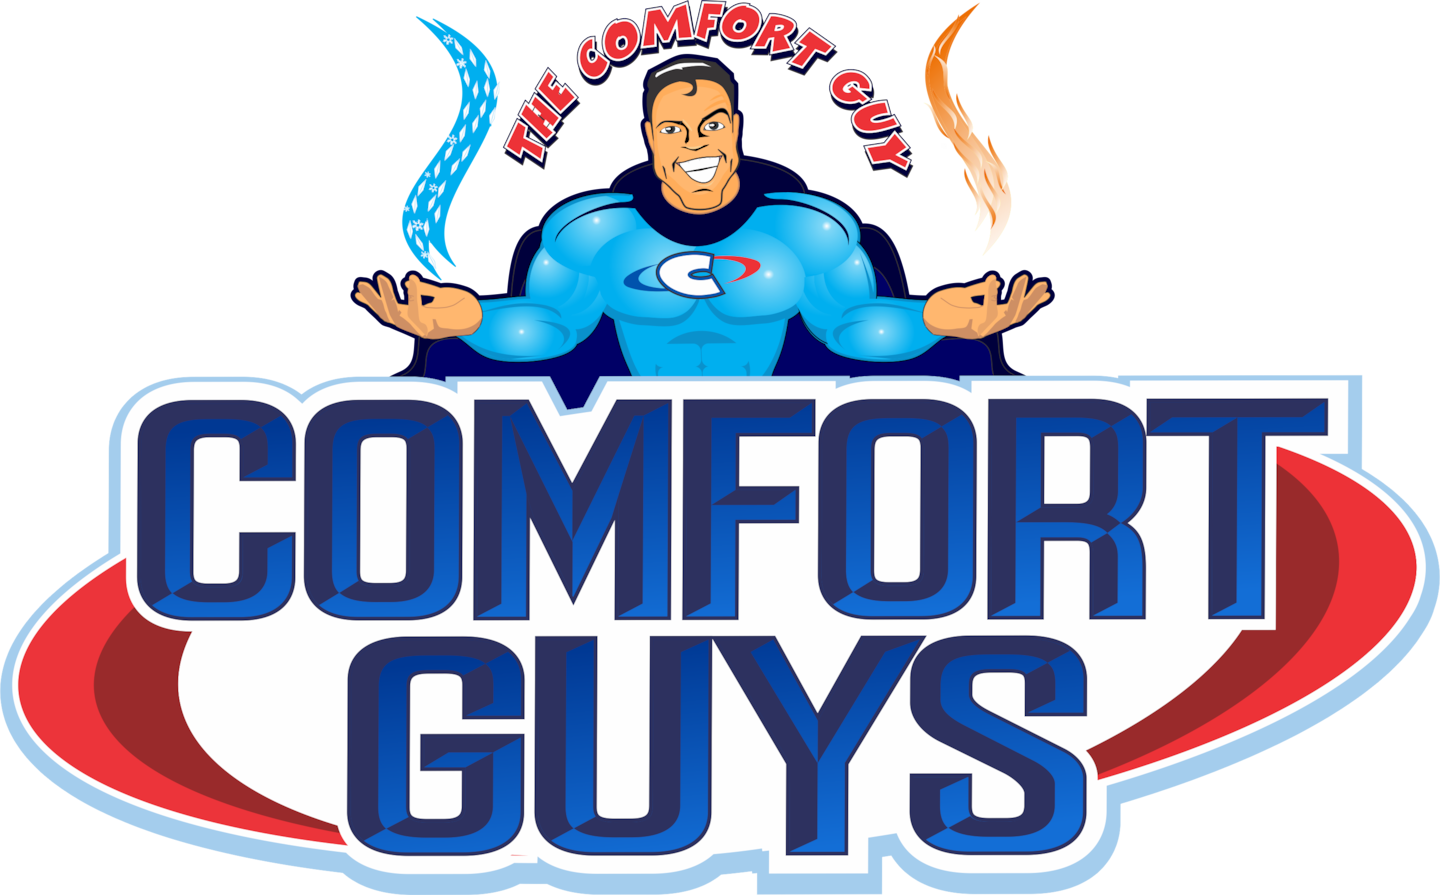 ComfortGuy / R & S Mechanical Heating & AC Services